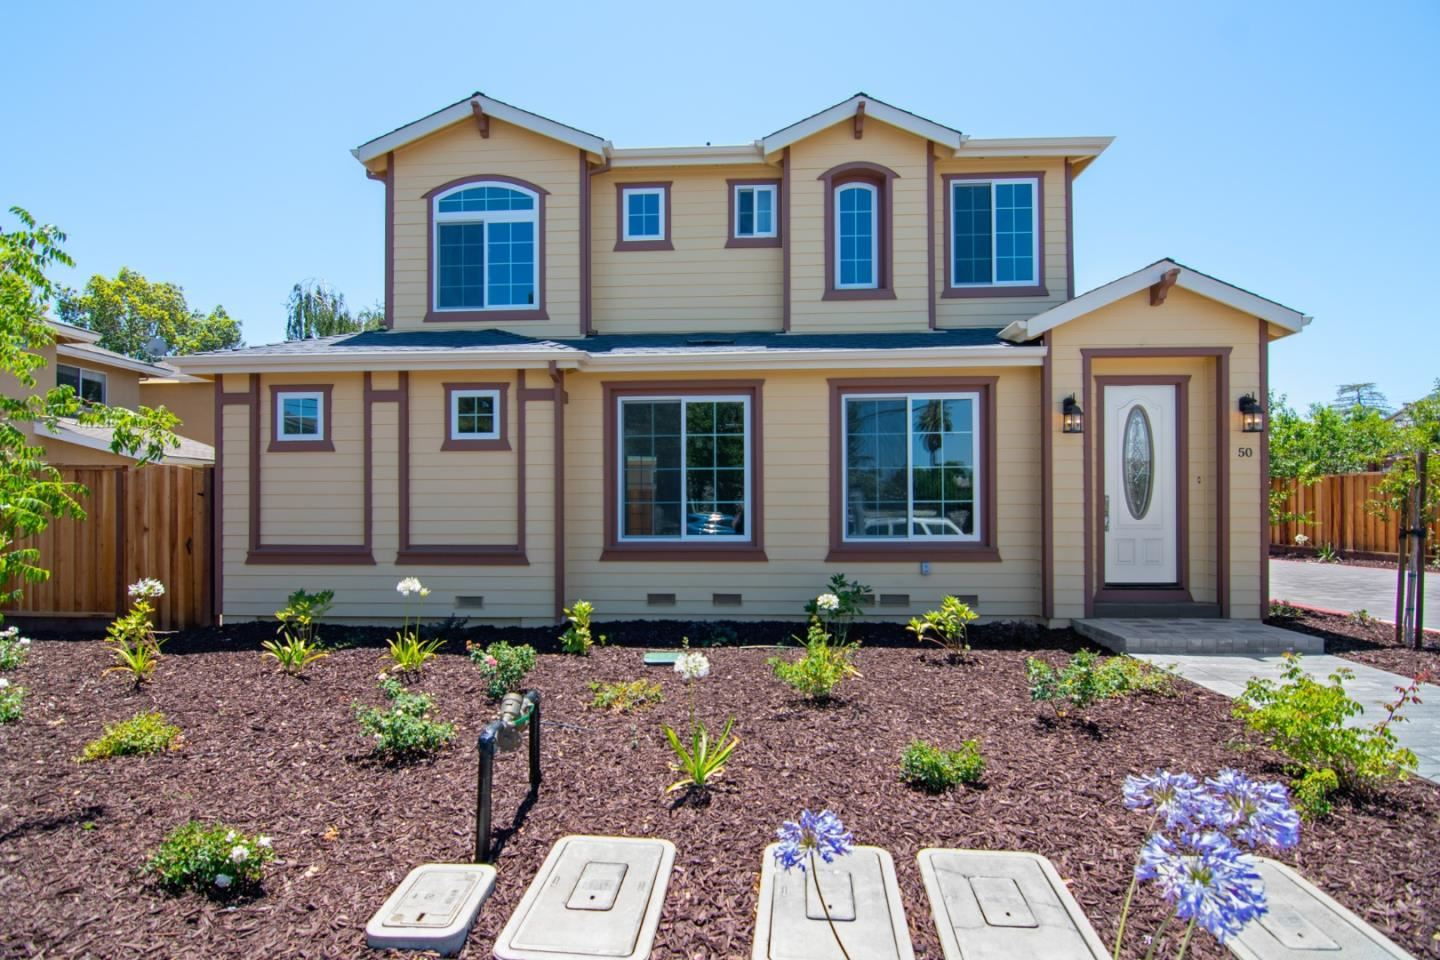 Photo for 50 Shelley AVE, CAMPBELL, CA 95008 (MLS # ML81813171)